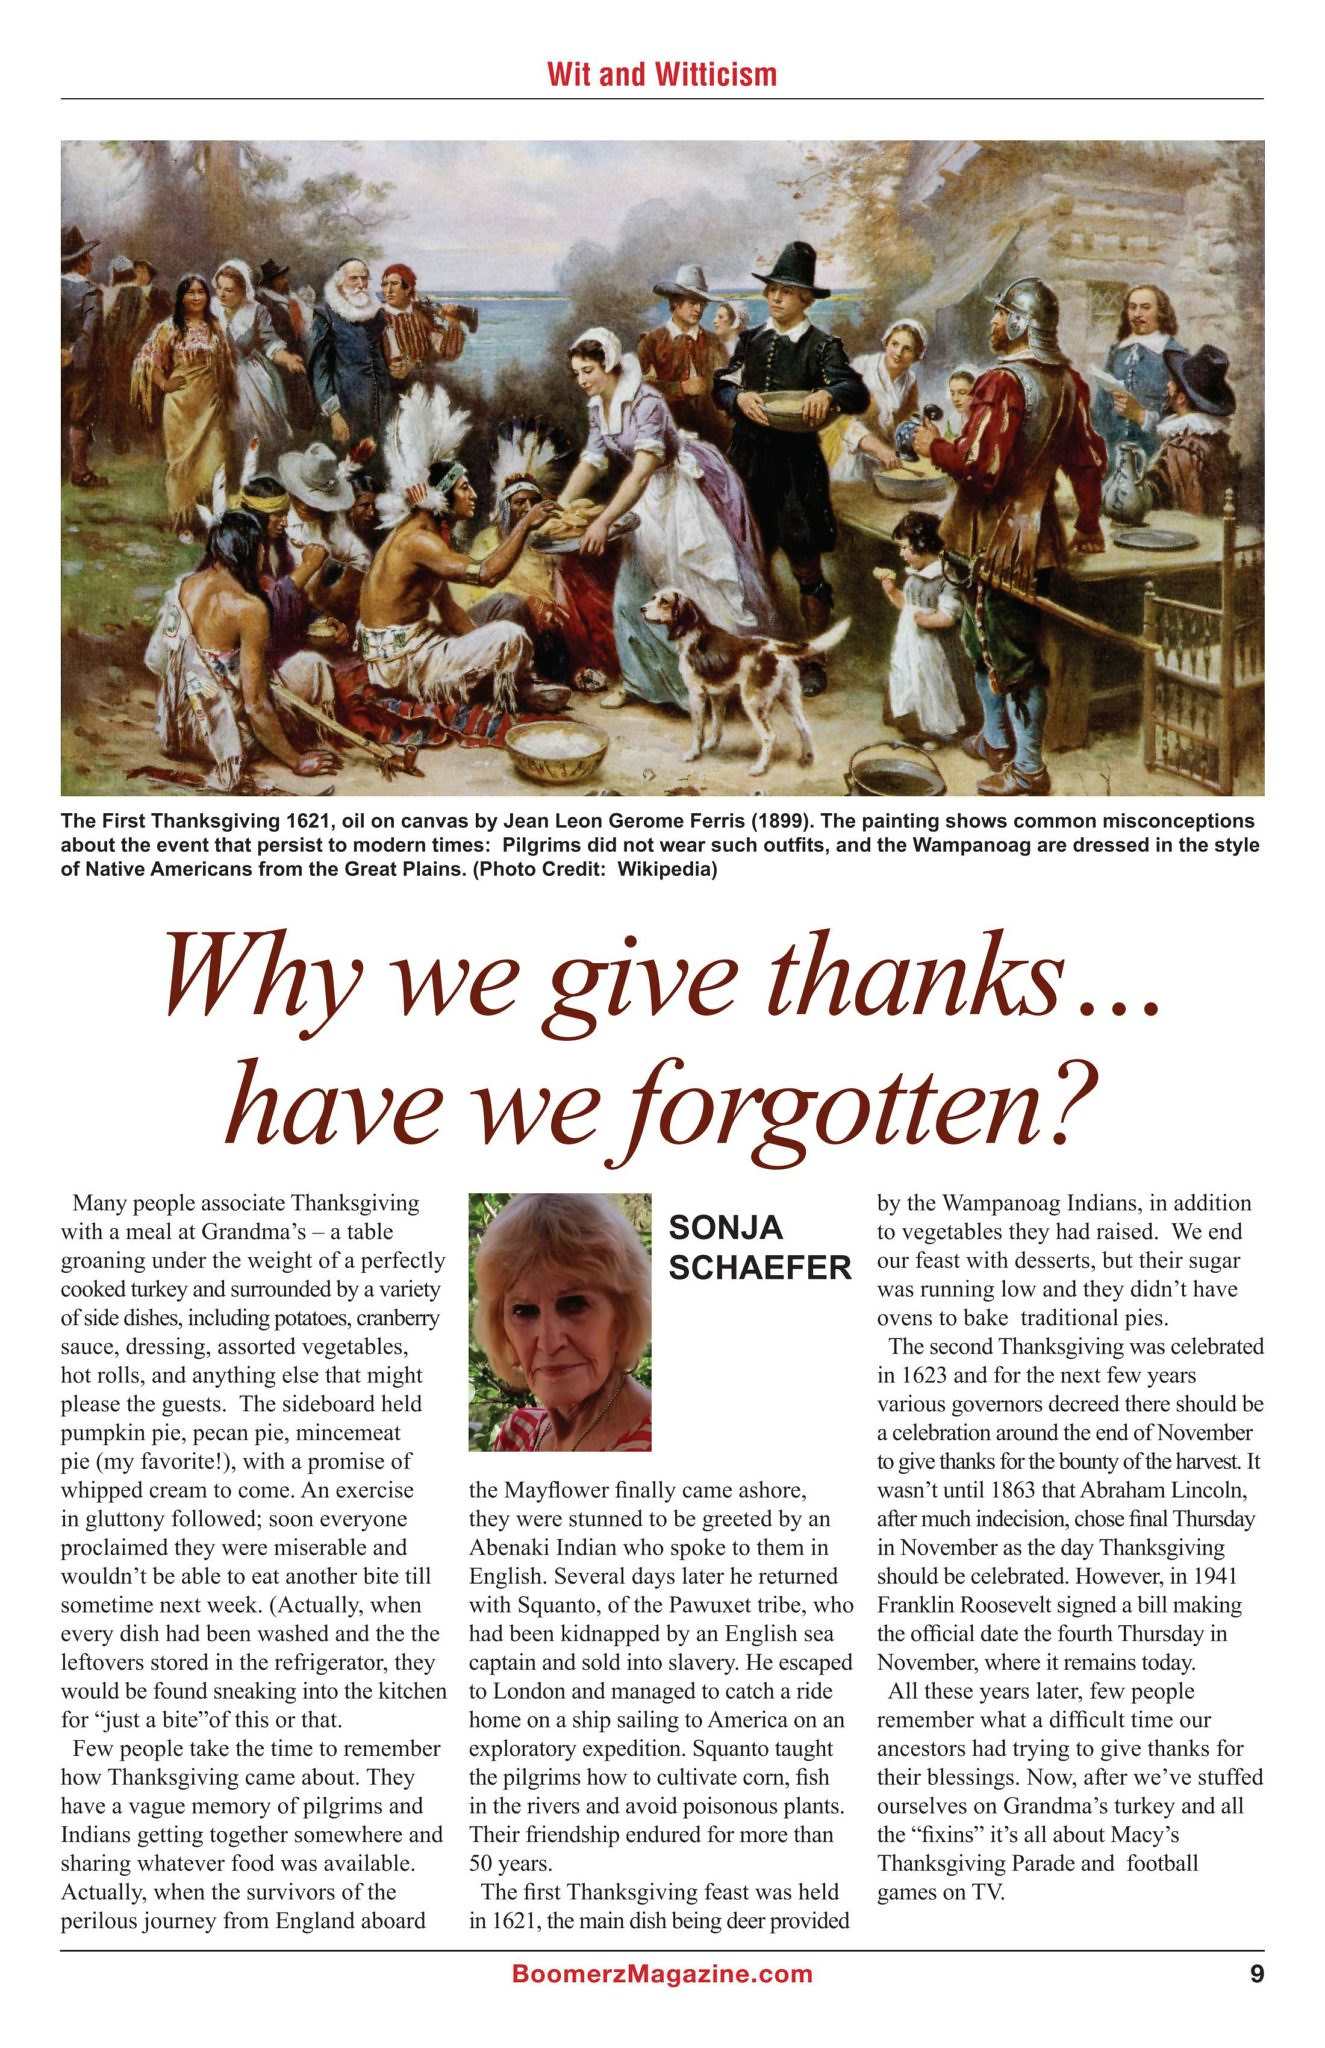 Boomerz Magazine 2018 November Why we give thanks have we forgotten